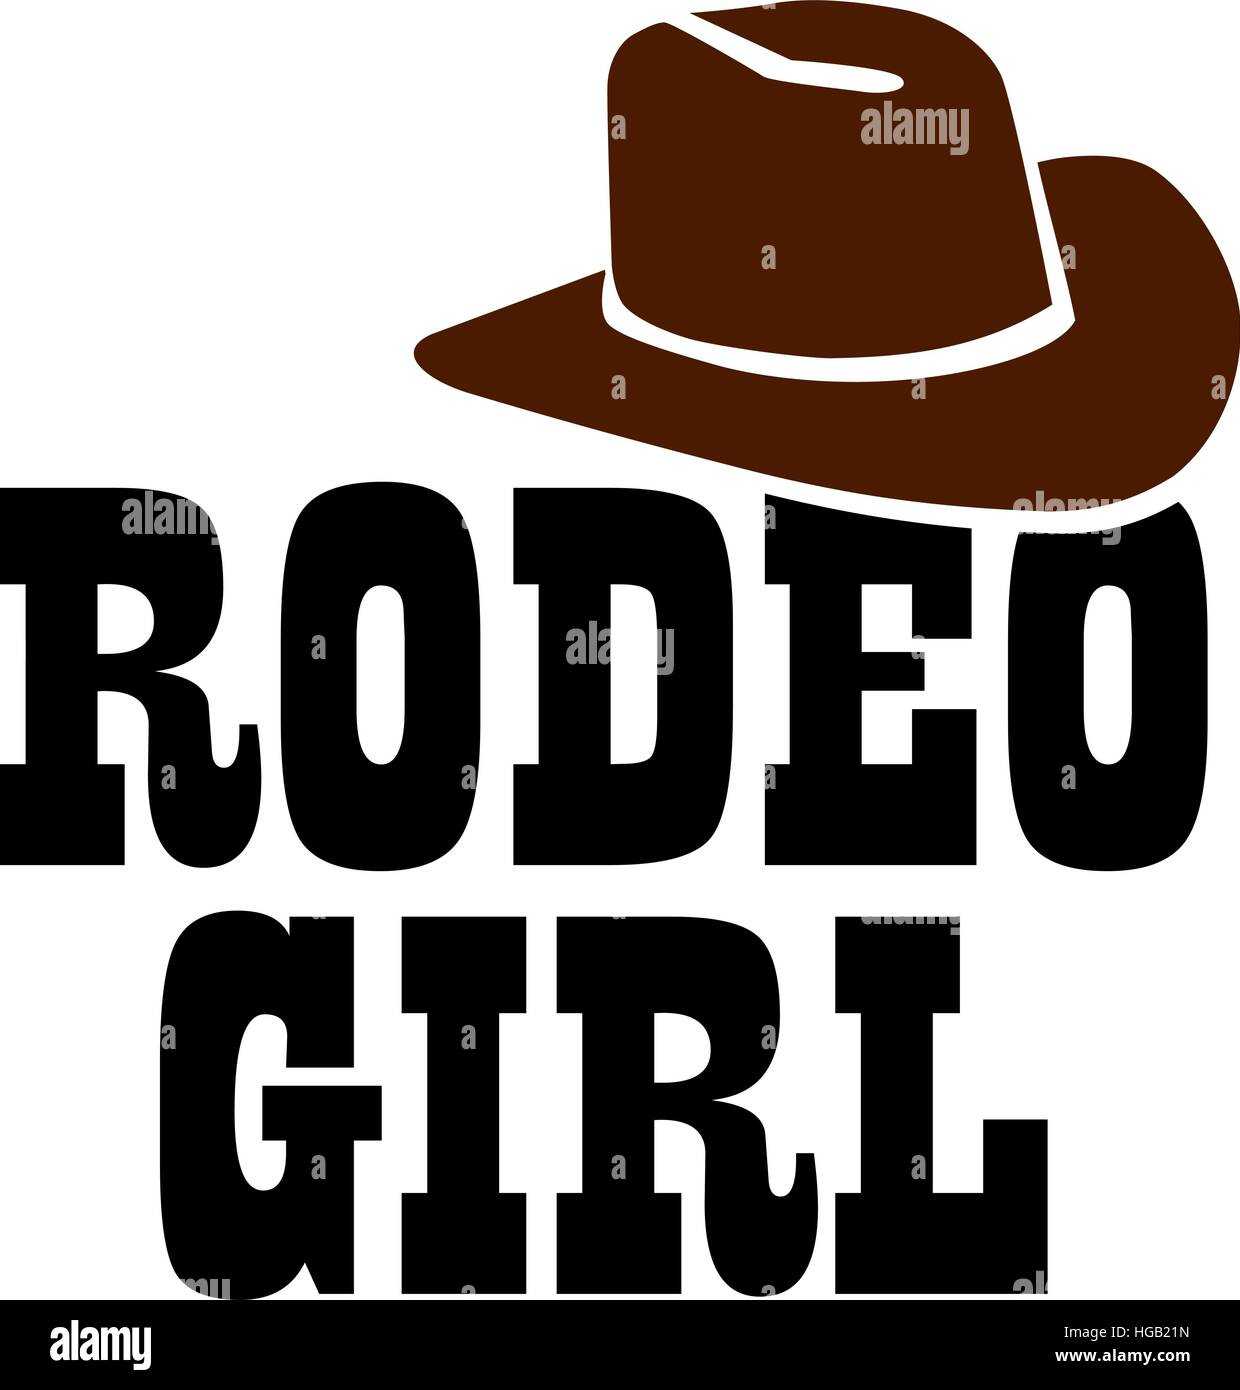 92bef66e6e8 Rodeo girl with cowboy hat stock vector art illustration vector jpg  1240x1390 Rodeo logos hats